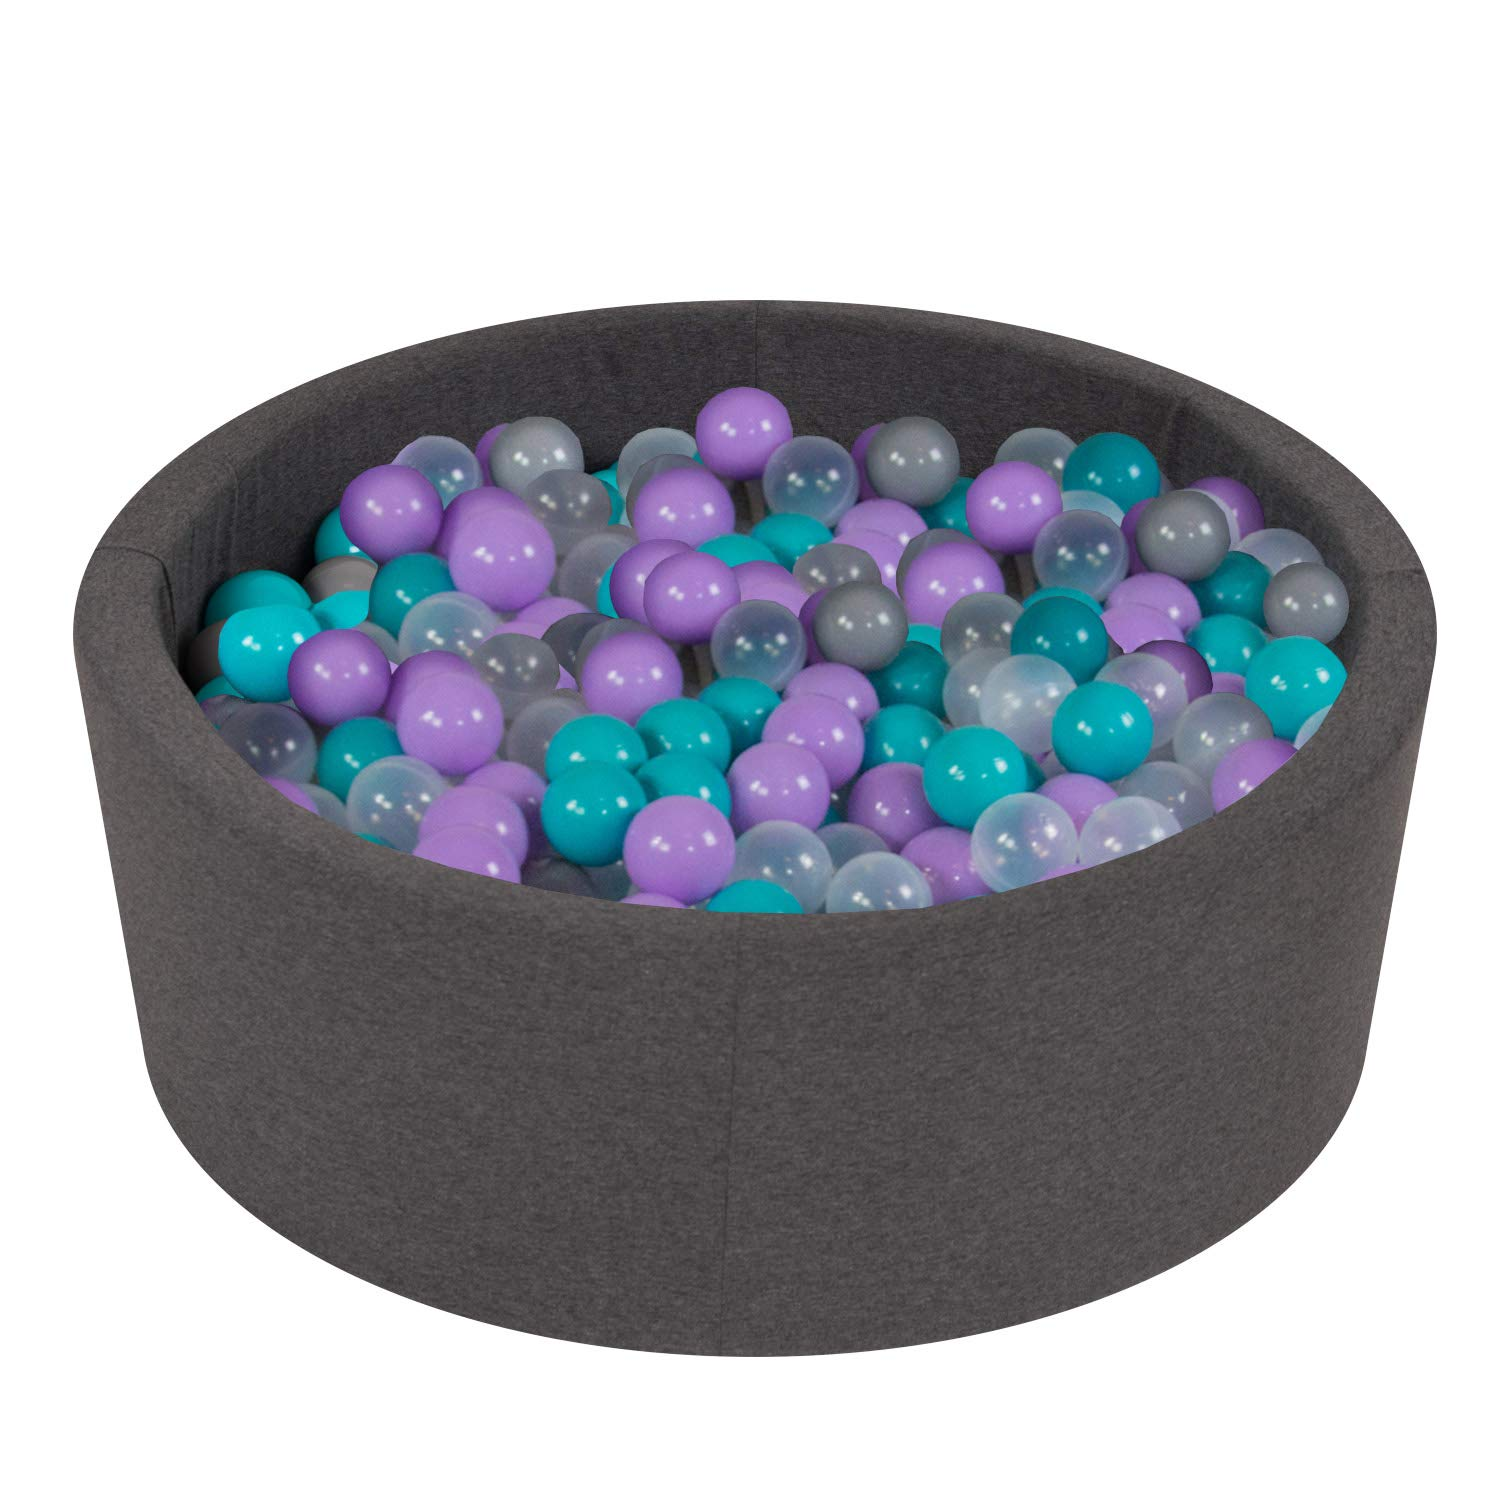 Vivisence Kids Play Ball Pit Foam 90X30 200 Balls Made In EU Certified For Safety, Black: Grey/Red/White,90/30 Foam Ball Pit